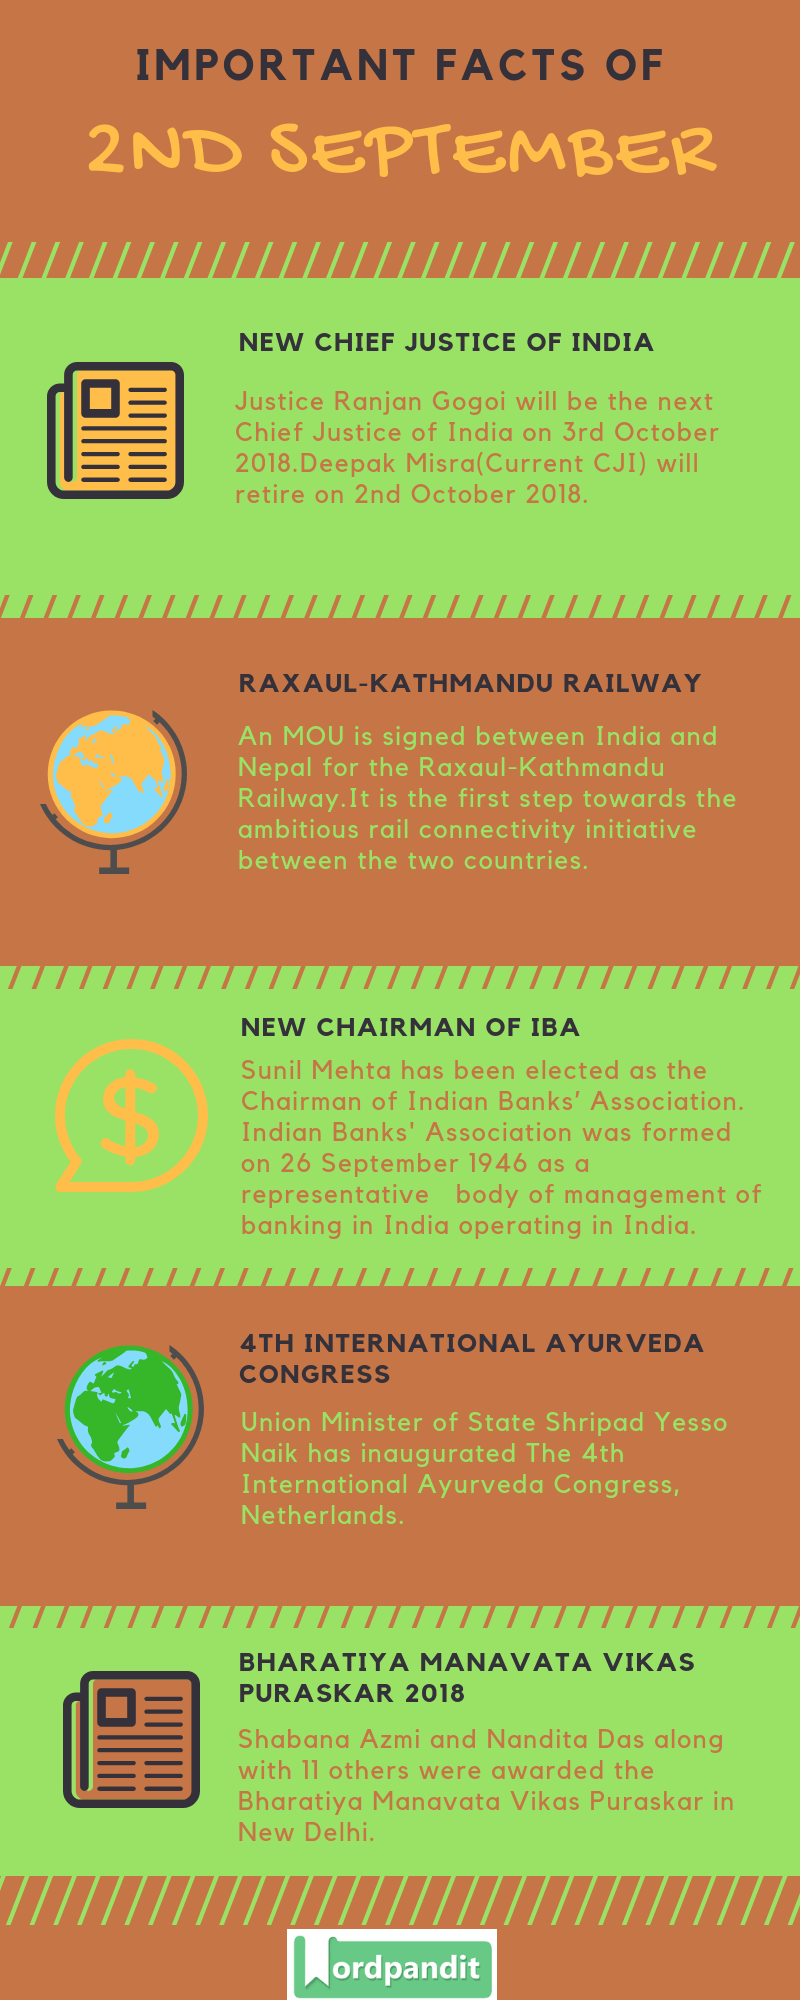 Daily Current Affairs 2 September 2018 Current Affairs Quiz 2 September 2018 Current Affairs Infographic